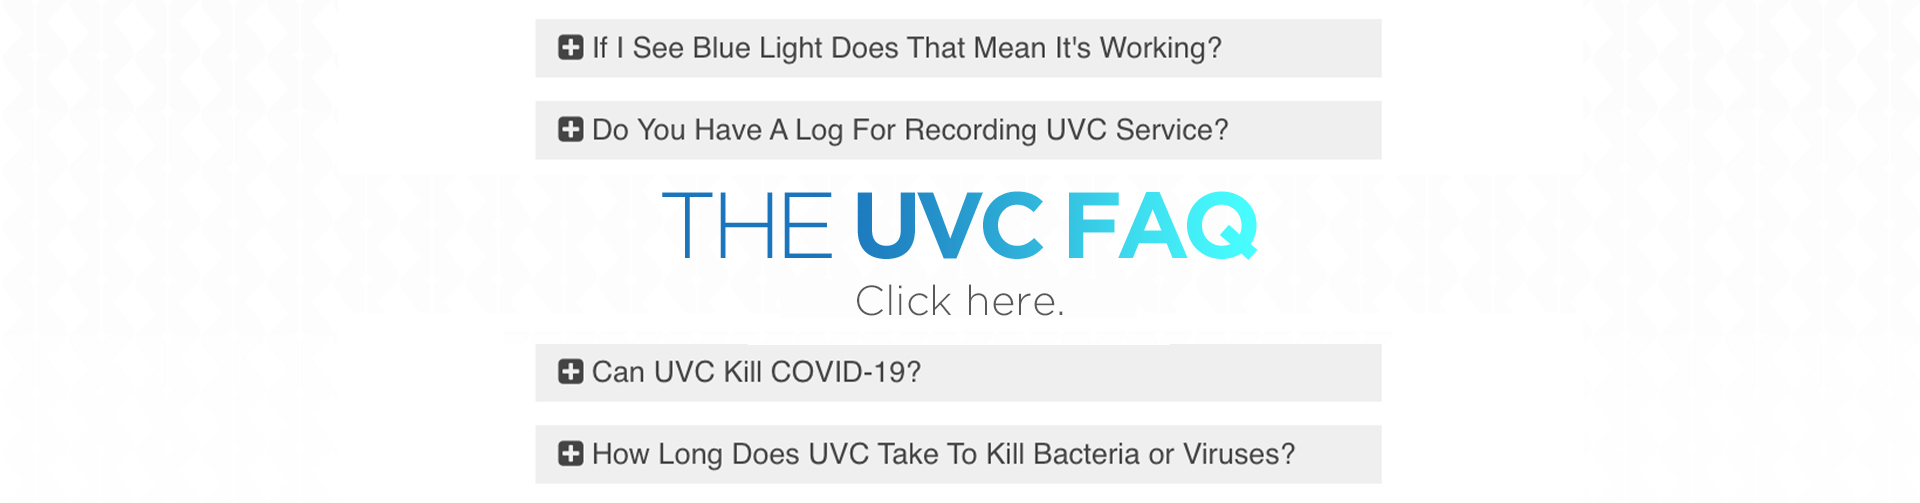 UVC Lighting FAQ Ultraviolet Disinfection Systems Most Frequently Asked Questions XtraLight LED Solutions